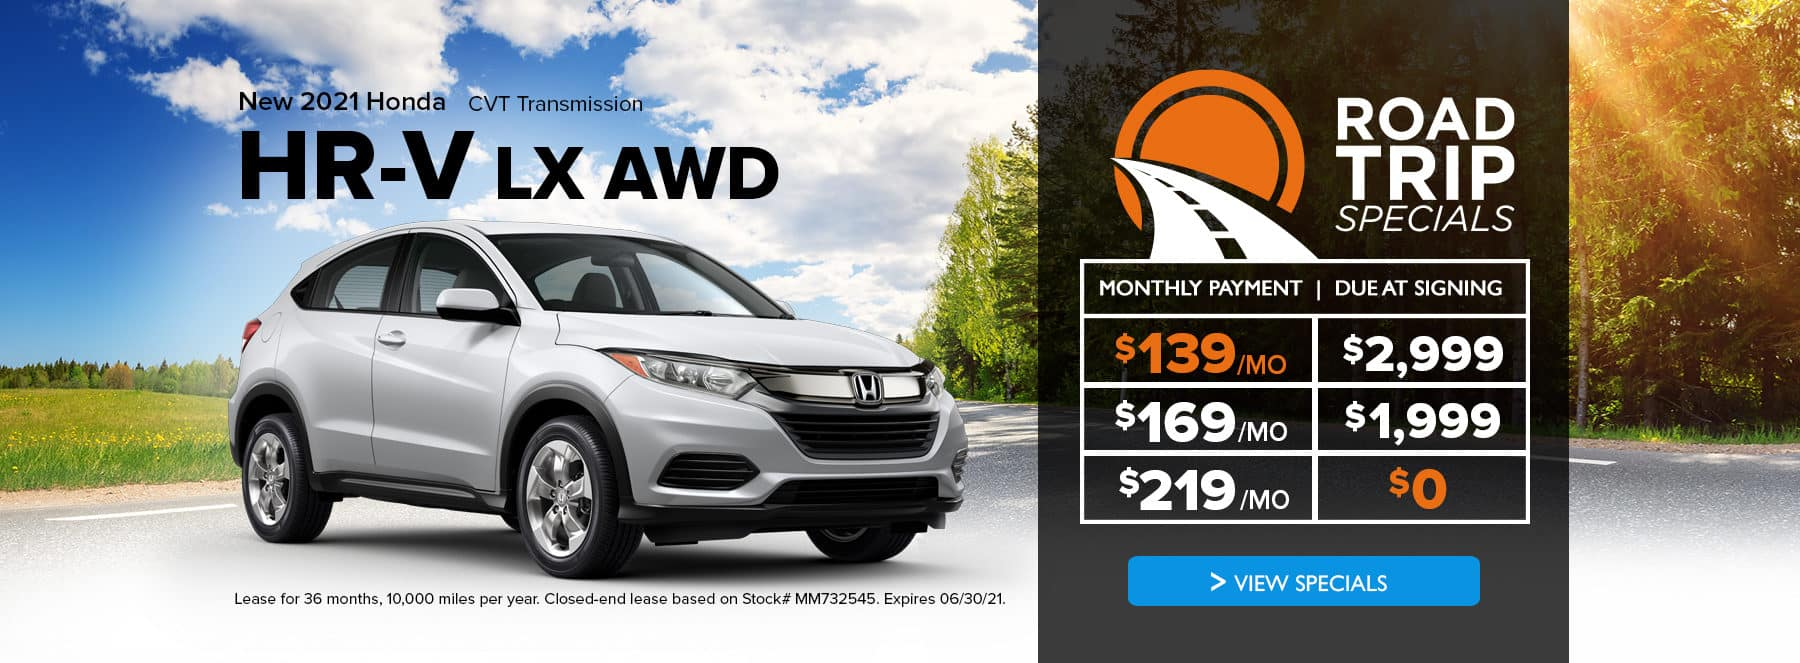 A silver new 2021 Honda HR-V with special lease offers